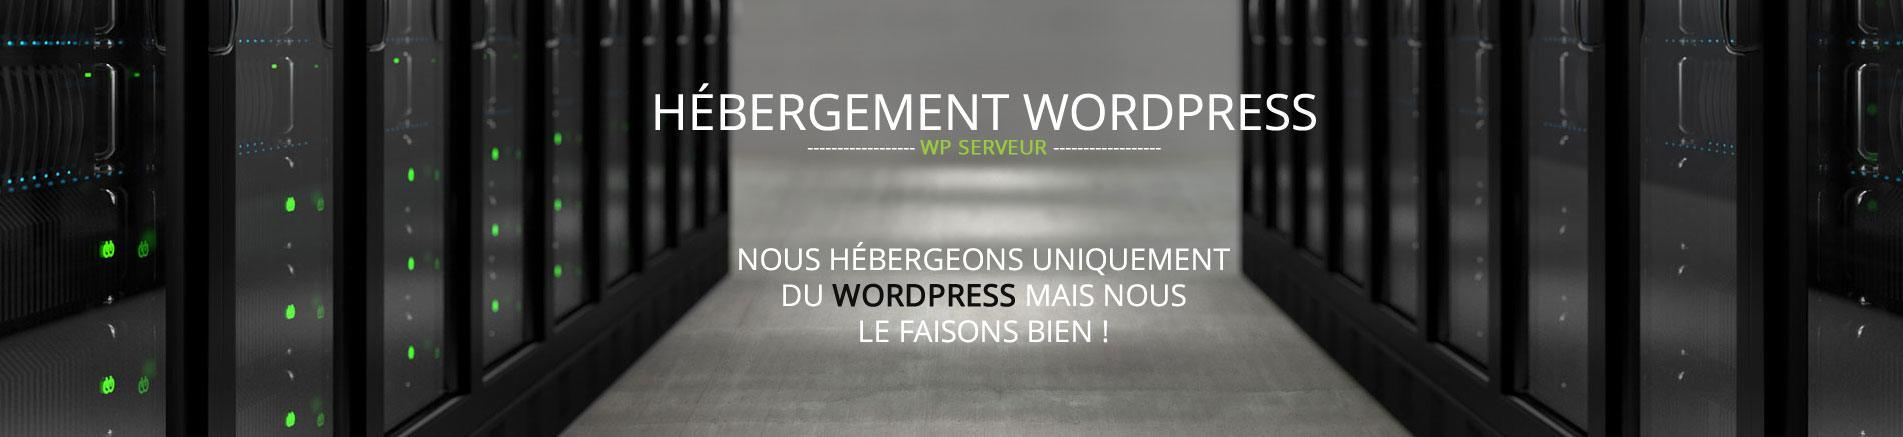 wpserveur-hebergement-wordpress-home